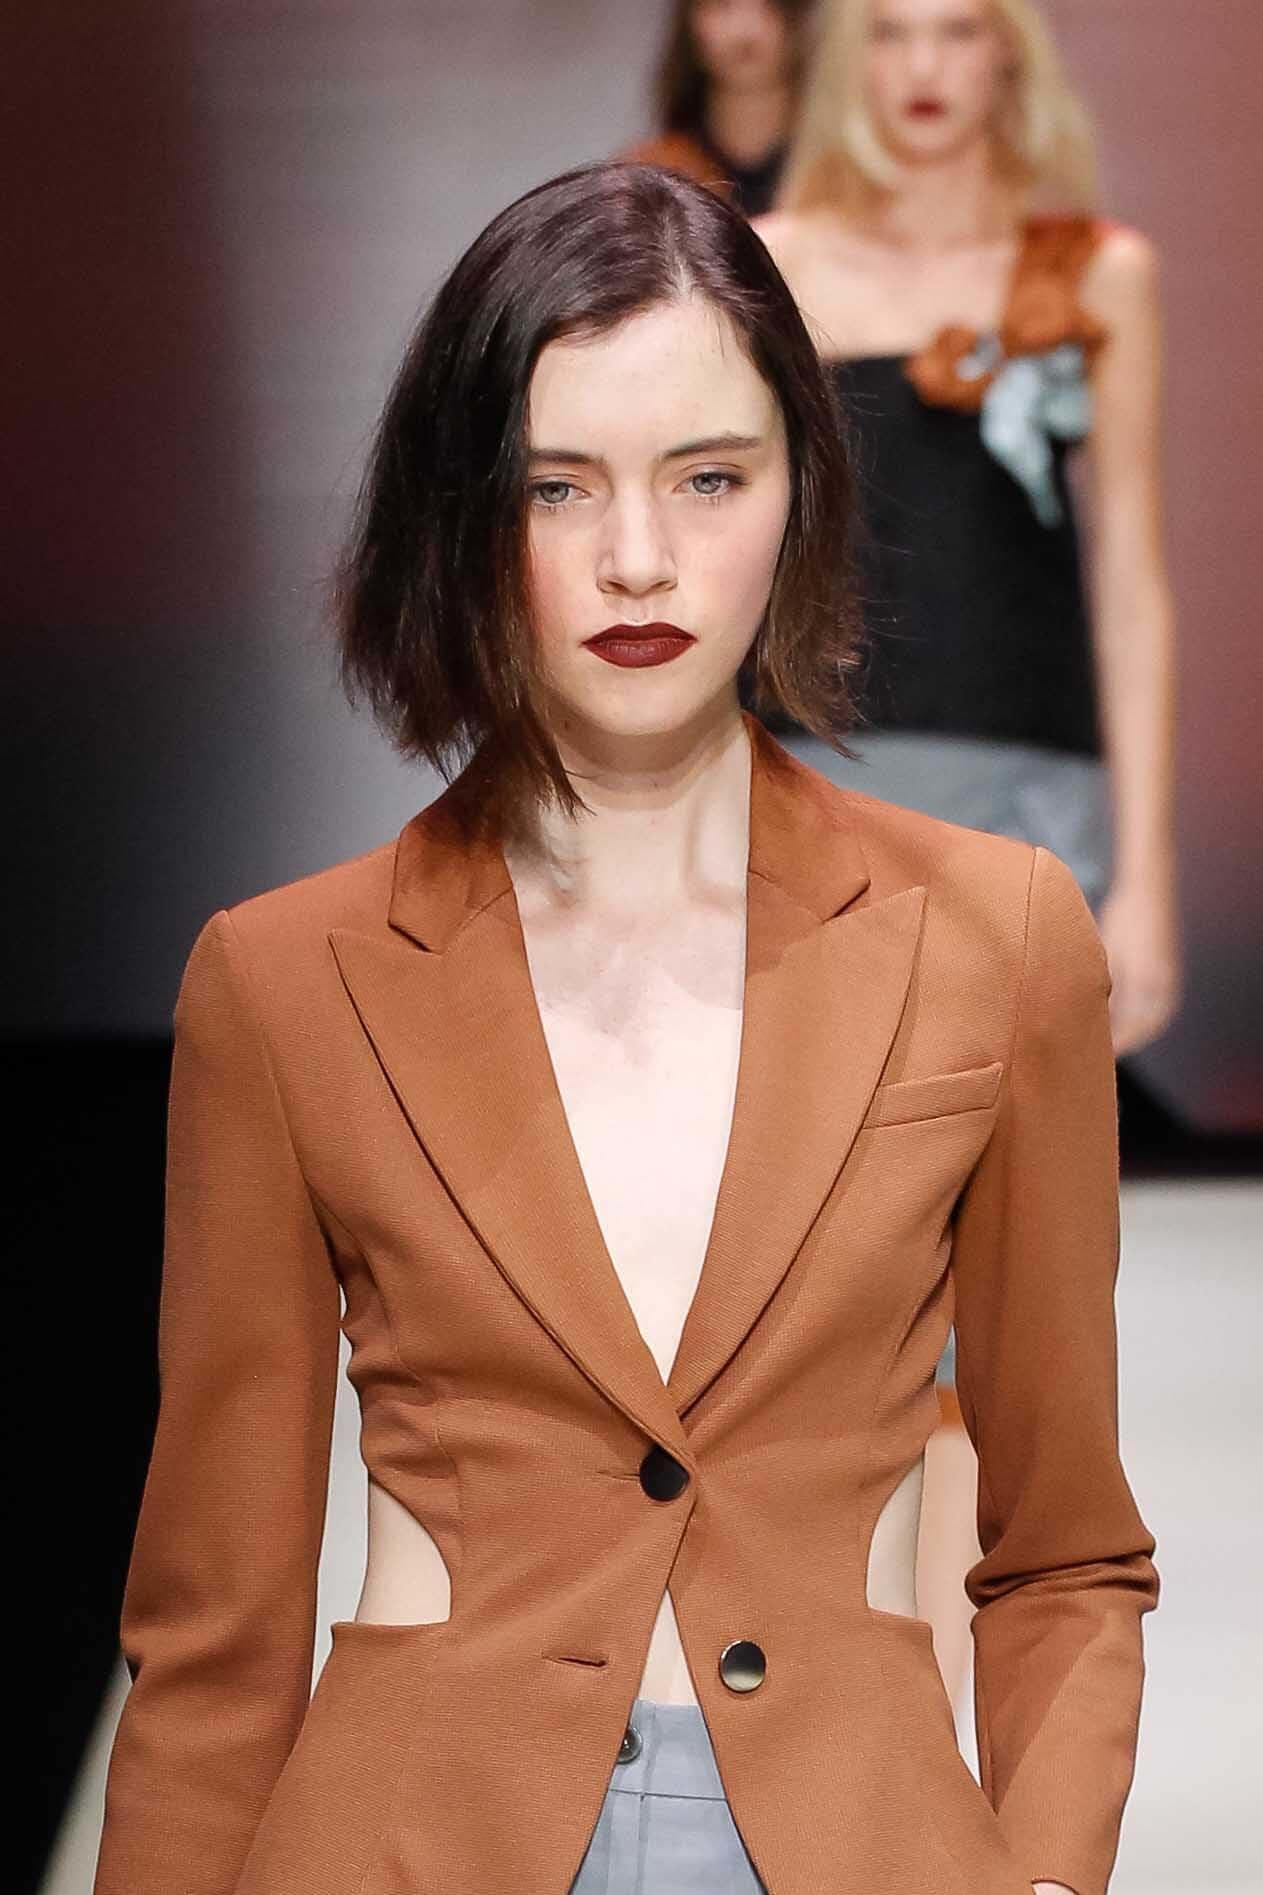 Will short hair suit me? Brunette with short bob wearing lipstick